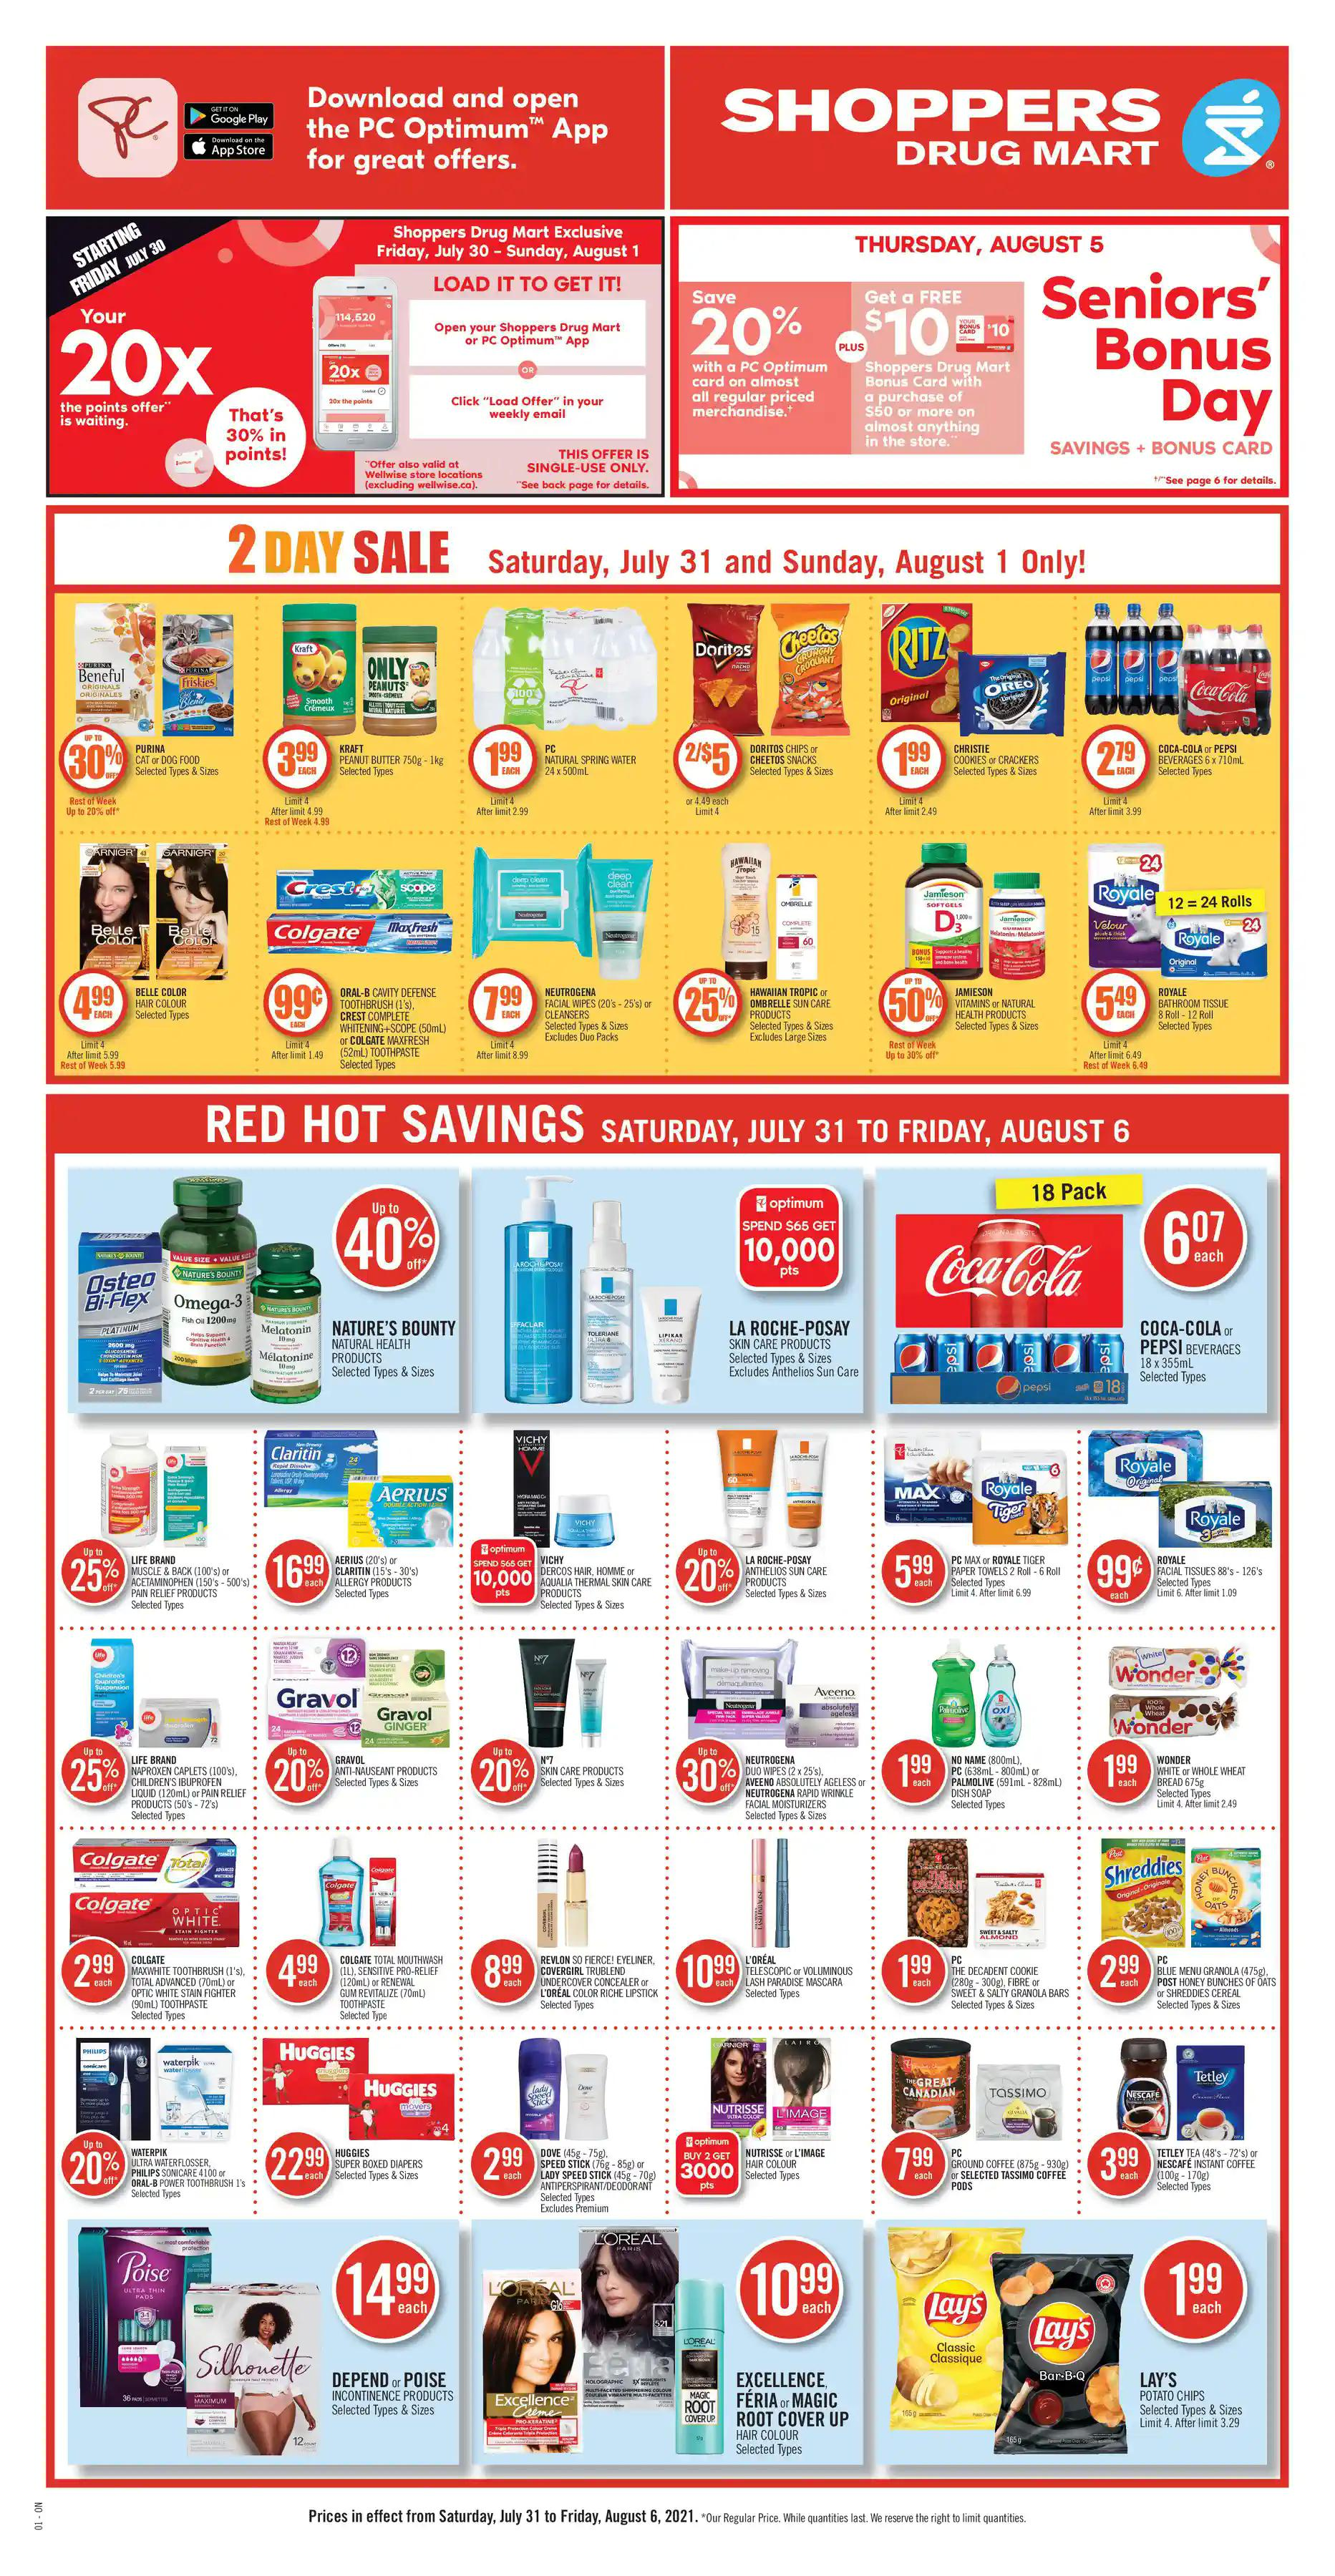 Shoppers Drug Mart - Weekly Flyer Specials